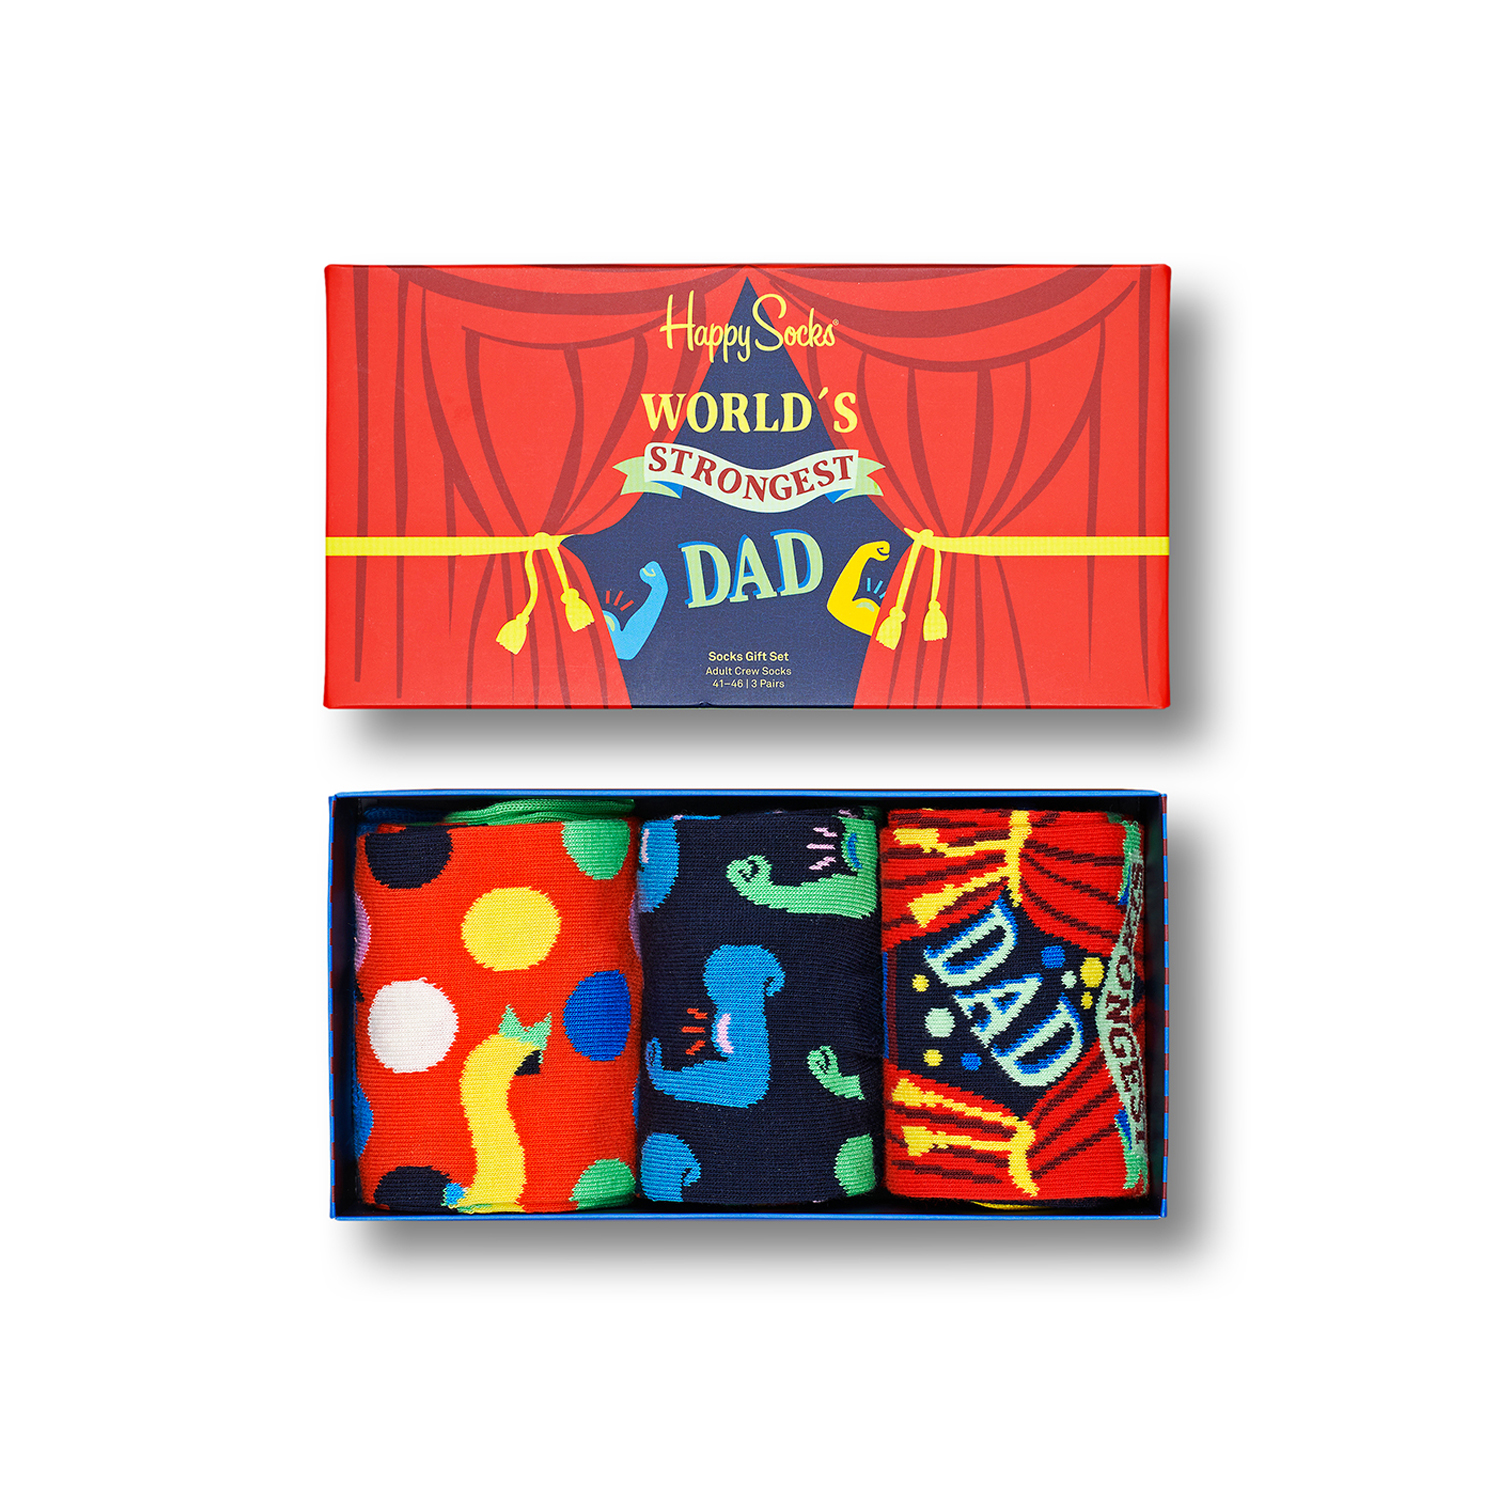 happy socks gift set fathers day 01 1500